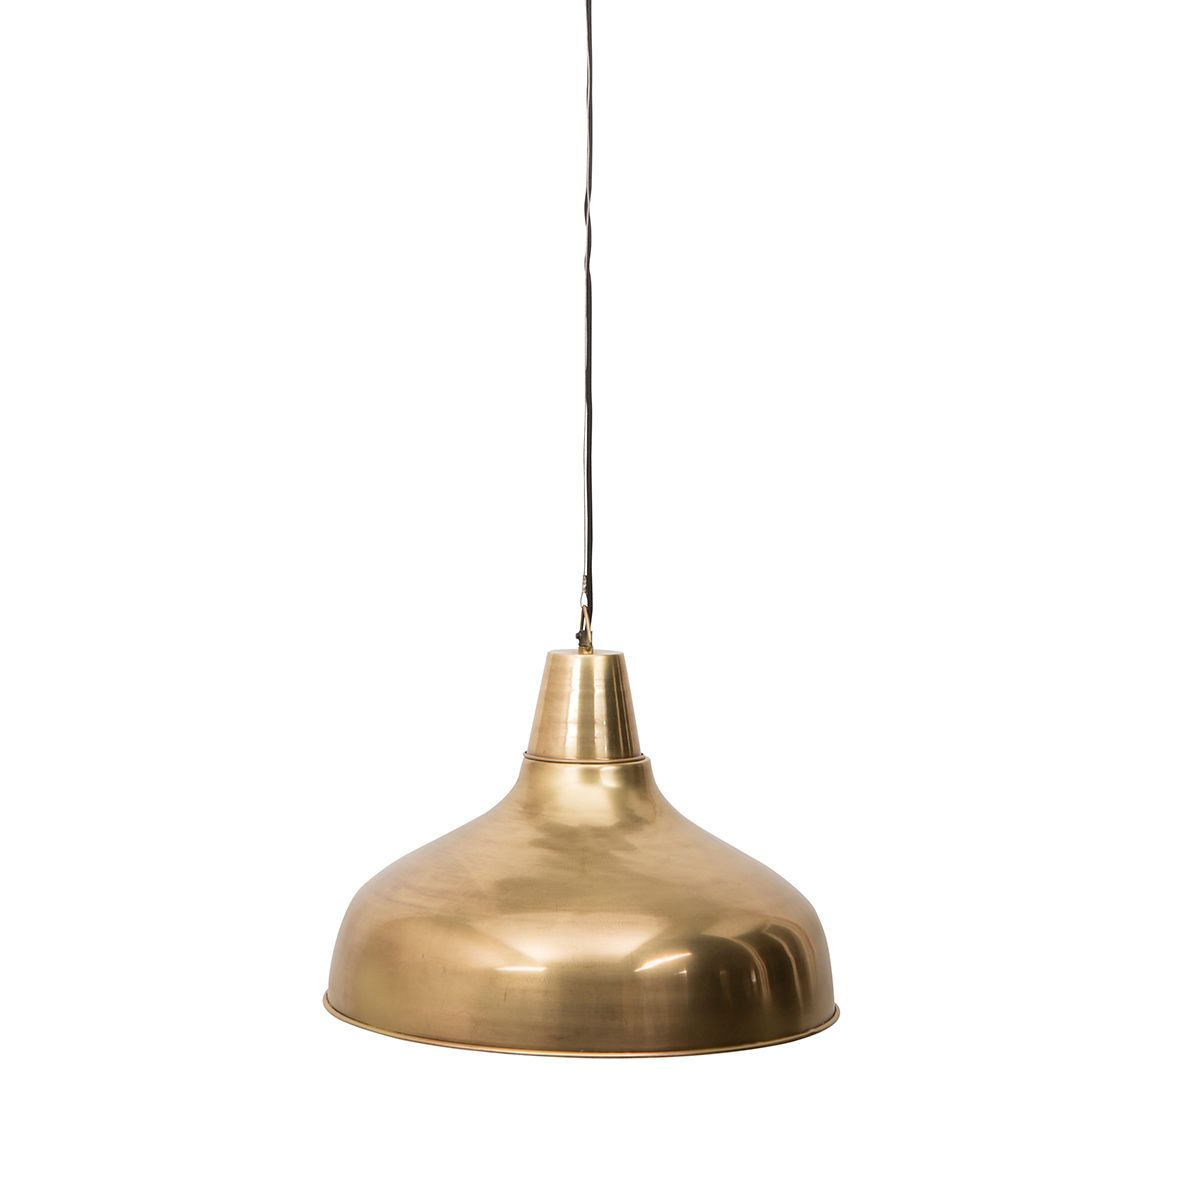 Suspension XL en métal finition laiton int. blanc Brass Mania Dutchbone